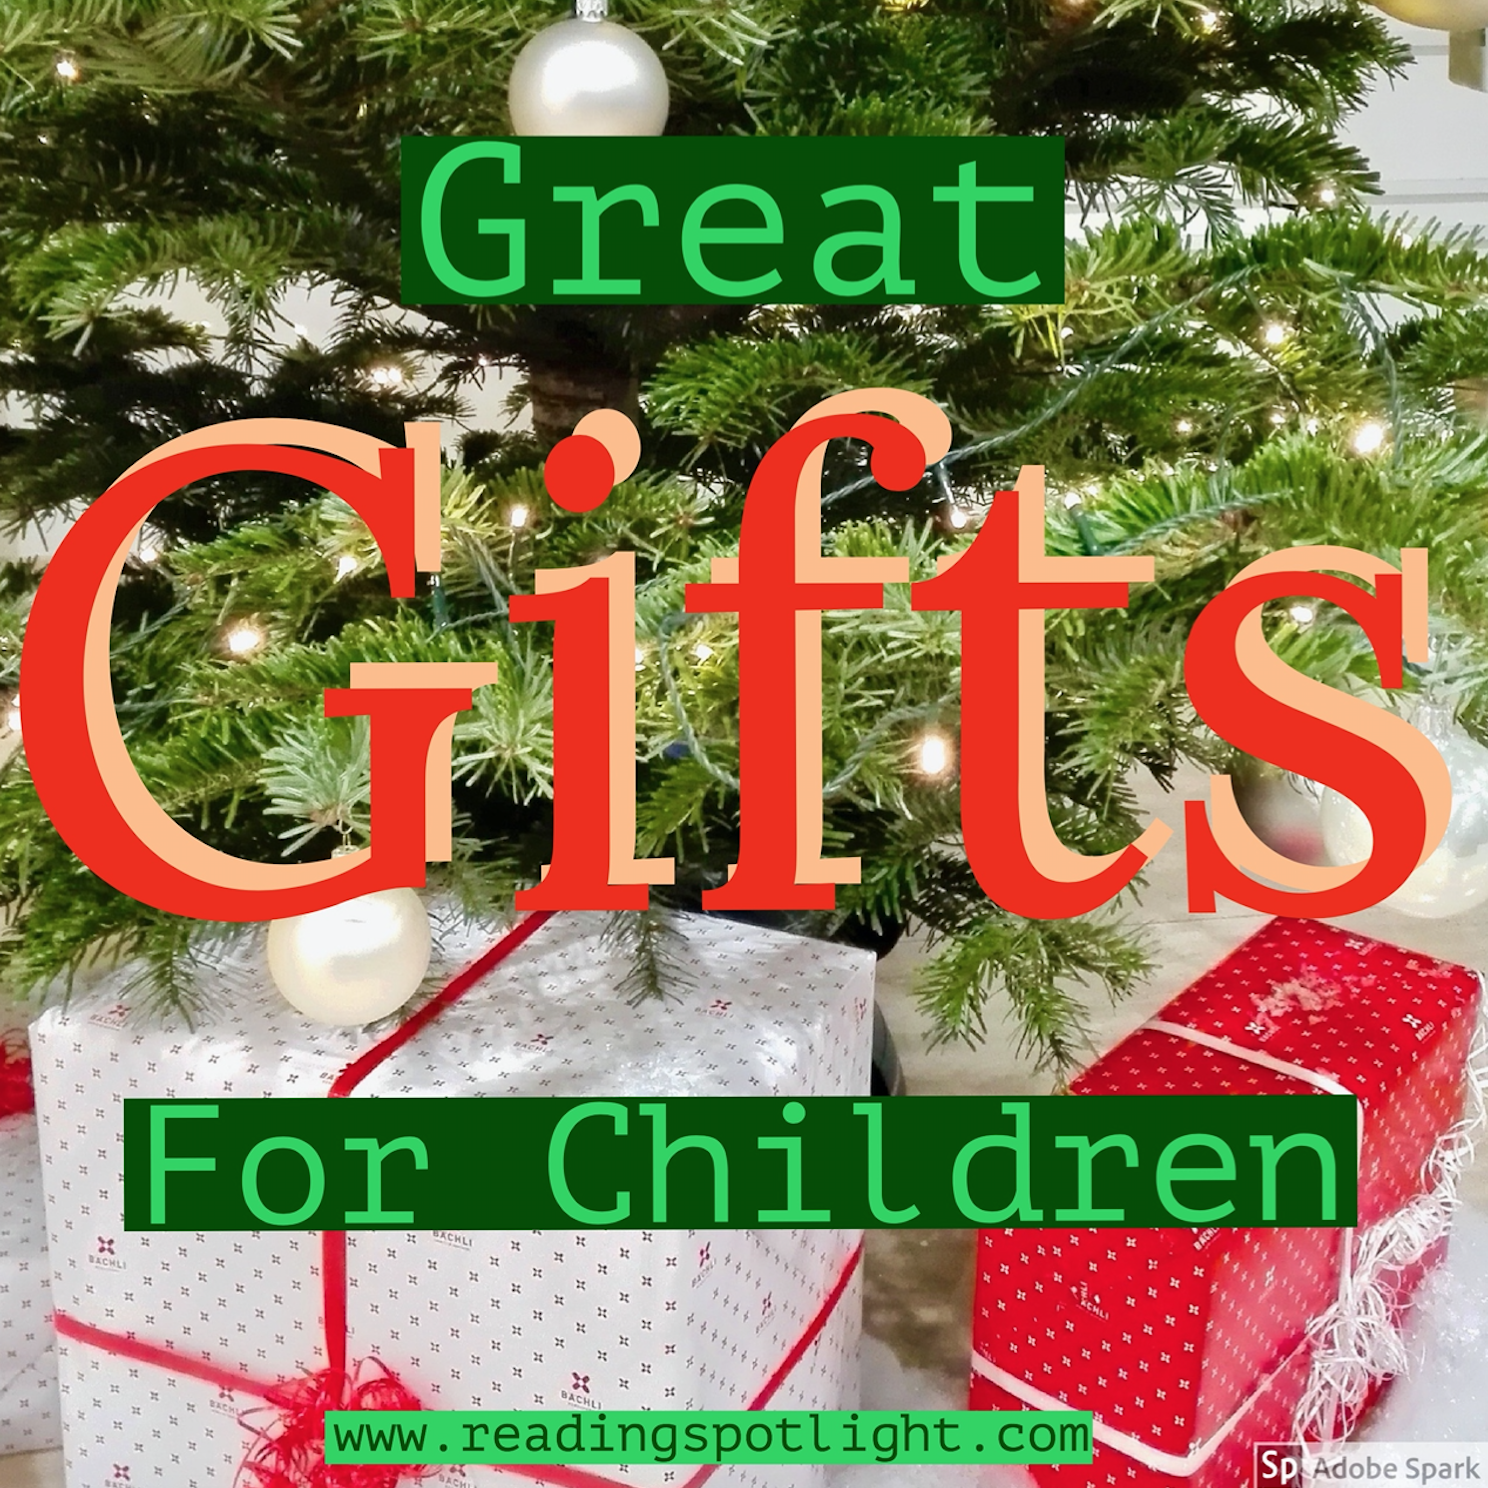 Give worthwhile gifts to children